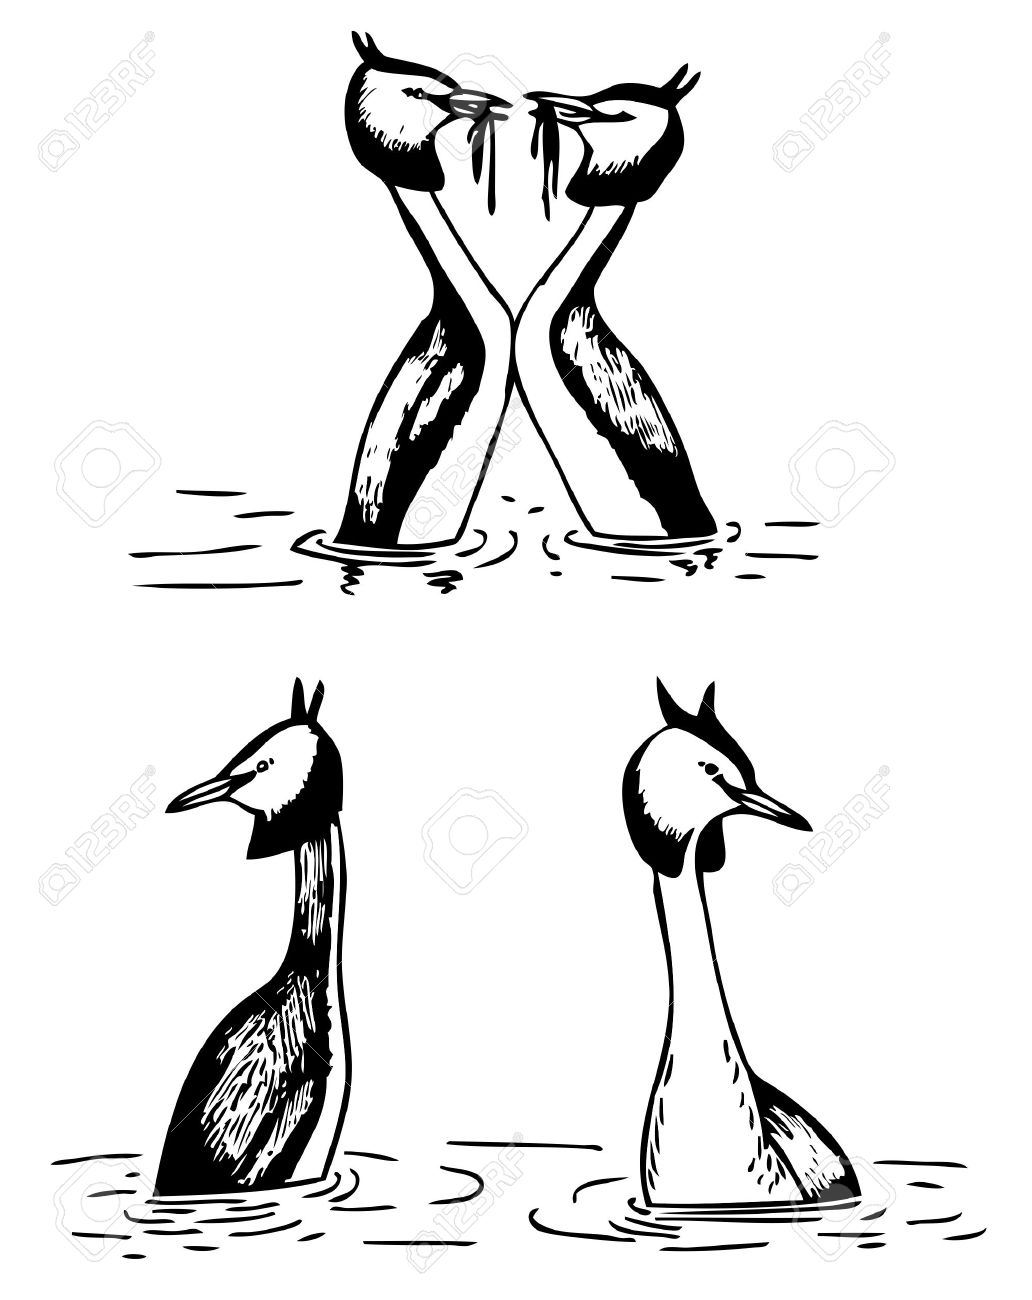 Great Crested Grebe Royalty Free Cliparts, Vectors, And Stock.